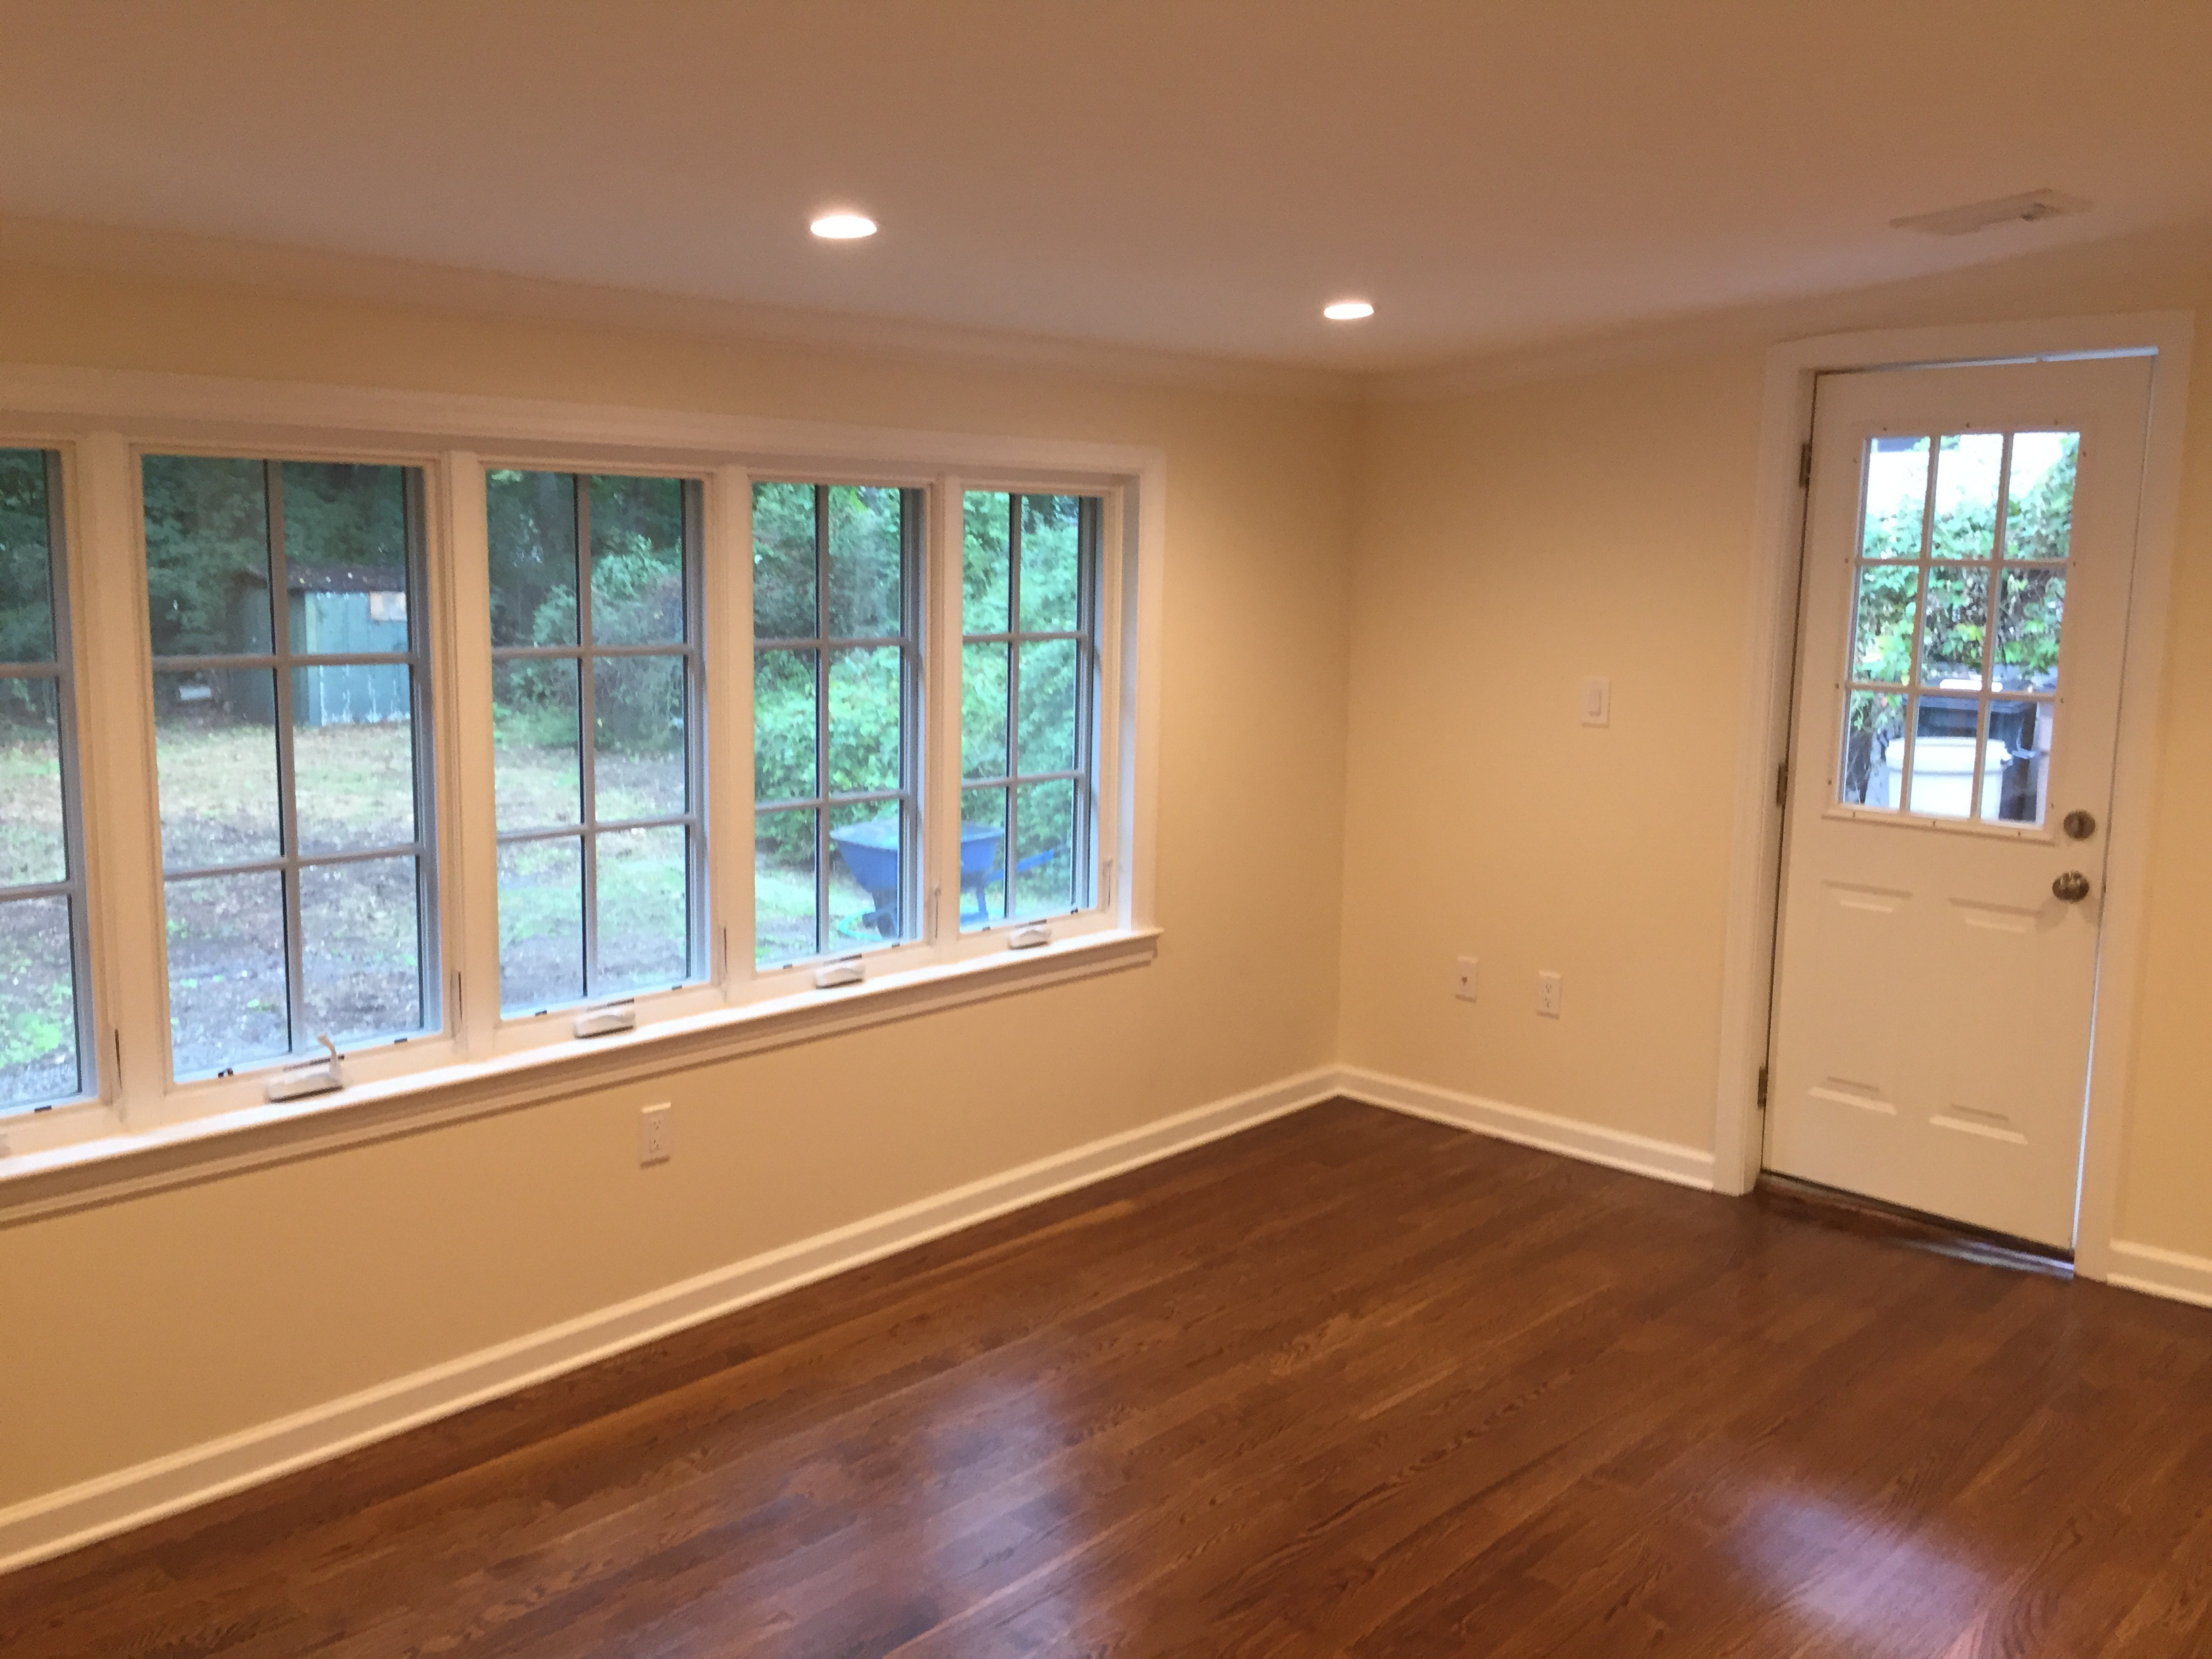 hardwood flooring stamford ct of 60 strawberry hill ave unit 314 stamford ct 06902 realestate com with isqheomyouw57x1000000000